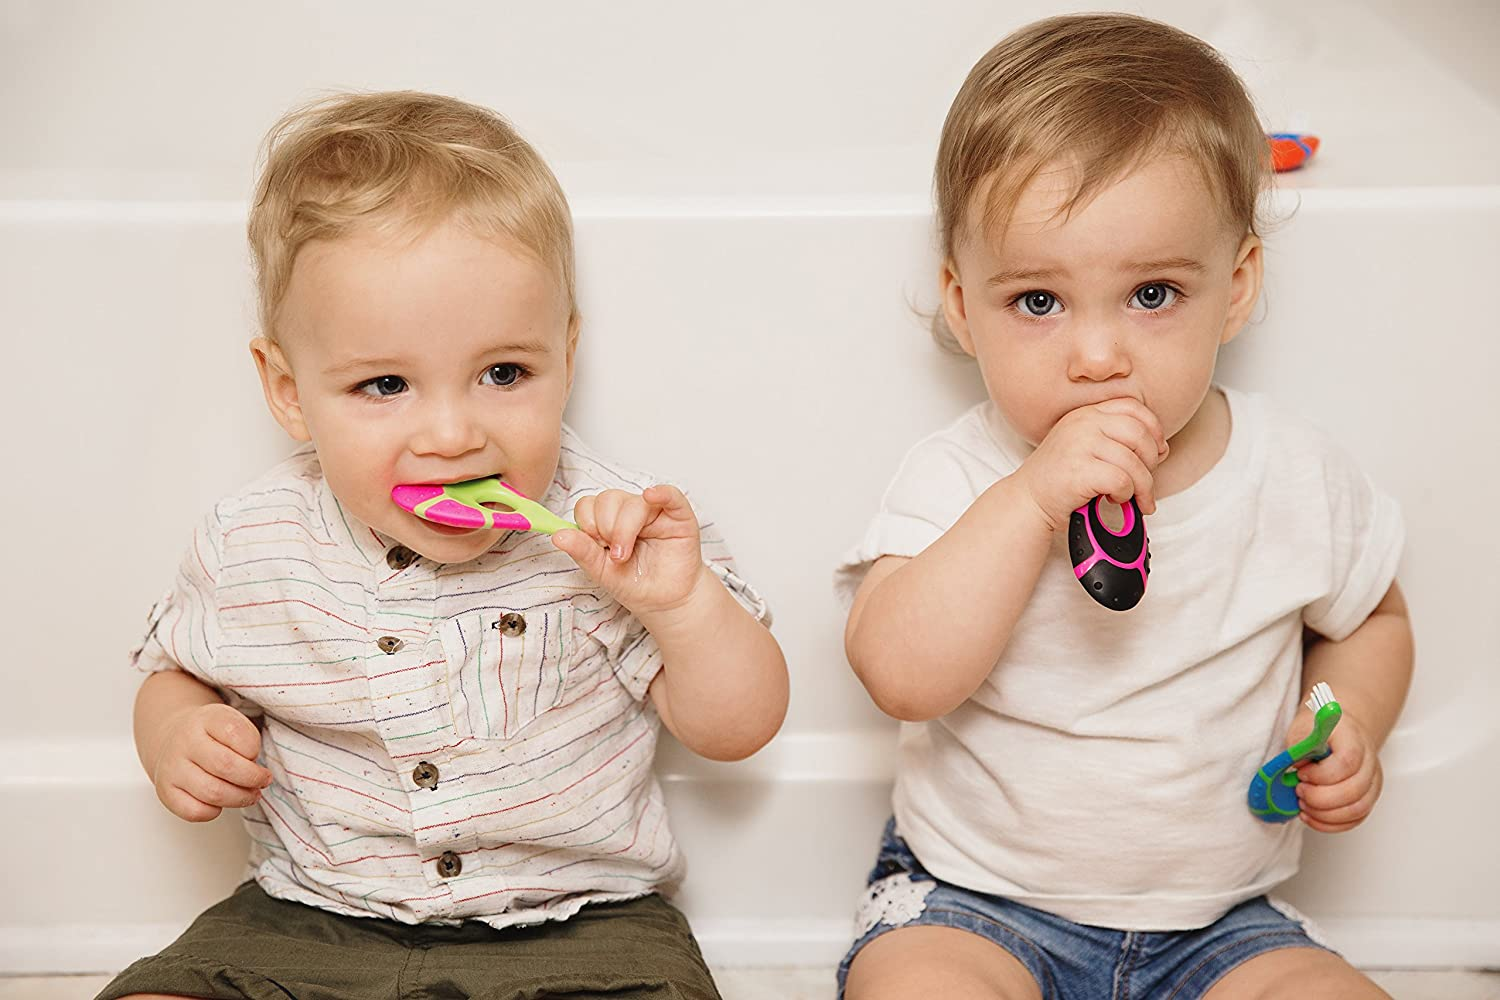 Amazon.com : Farber Baby Toothbrush & Toddler Toothbrush for 0-2 Years Old   Teething Finger Handle   BPA Free with Baby Toothpaste Indicator   Extra Soft ...